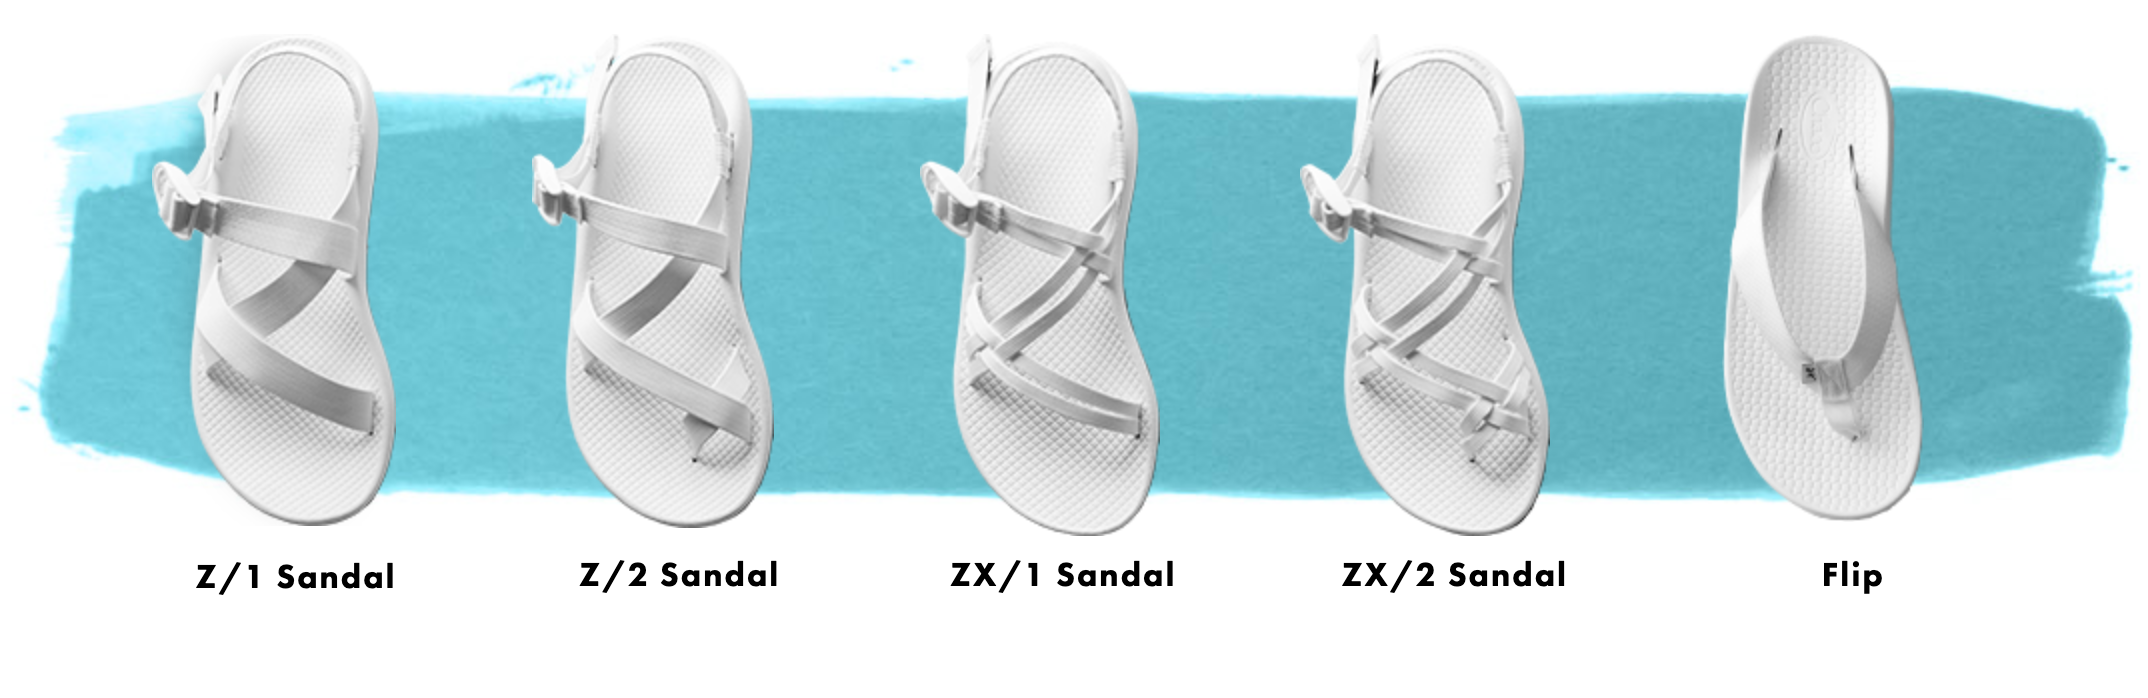 Chaco Personalized Sandals